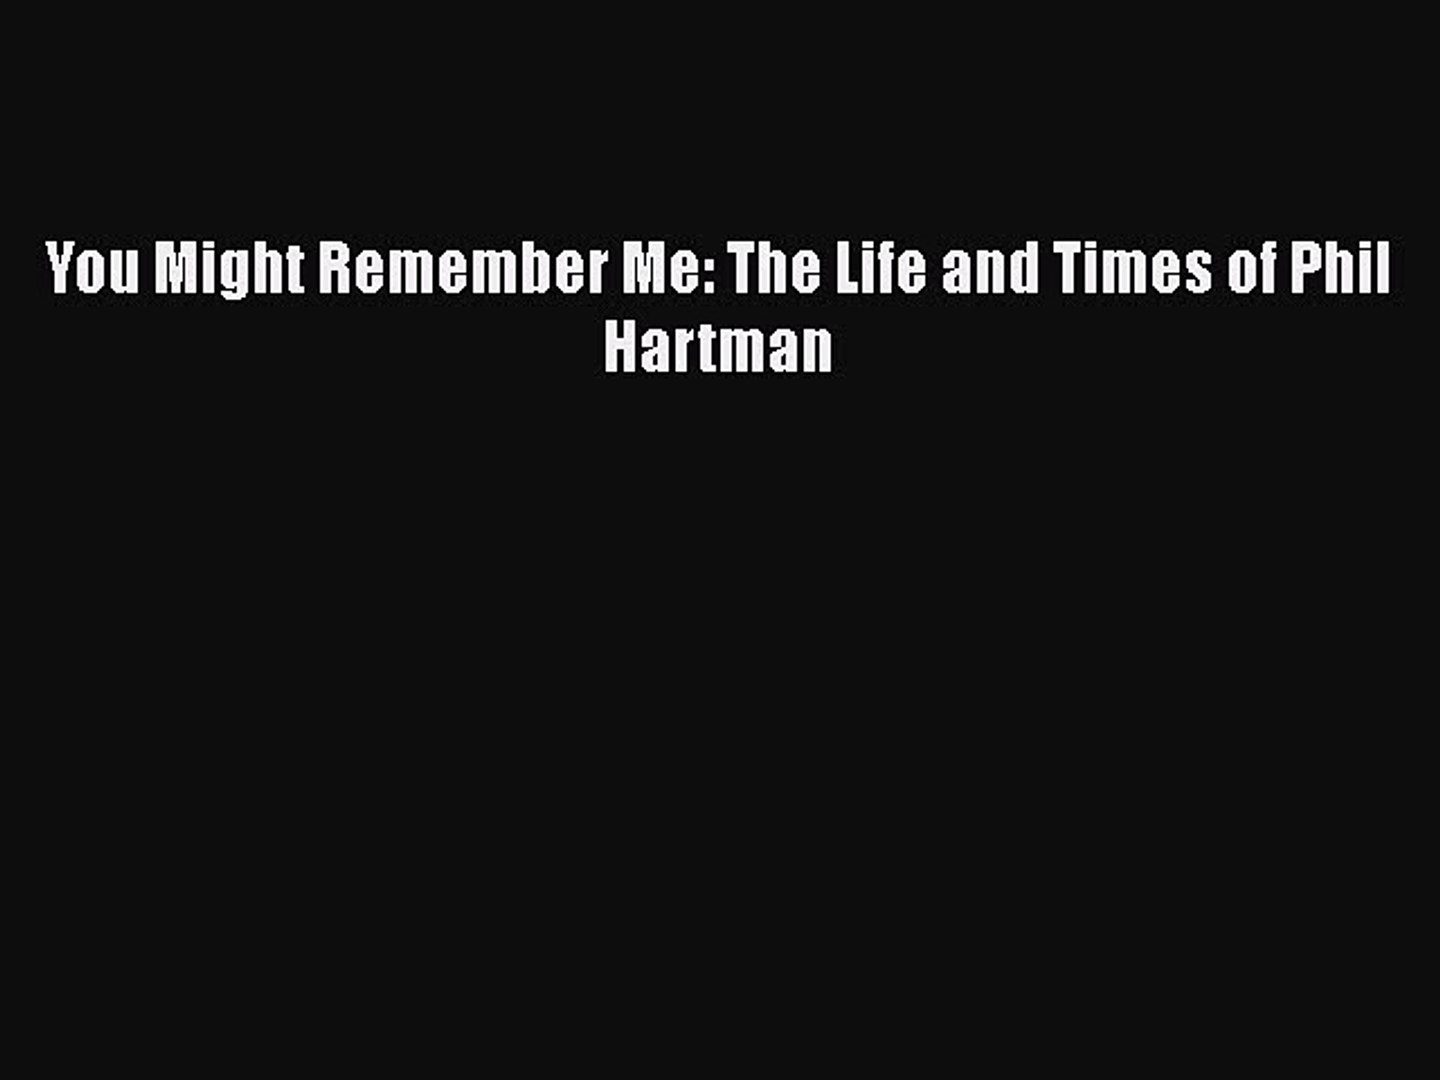 [PDF Download] You Might Remember Me: The Life and Times of Phil Hartman  Read Online Book